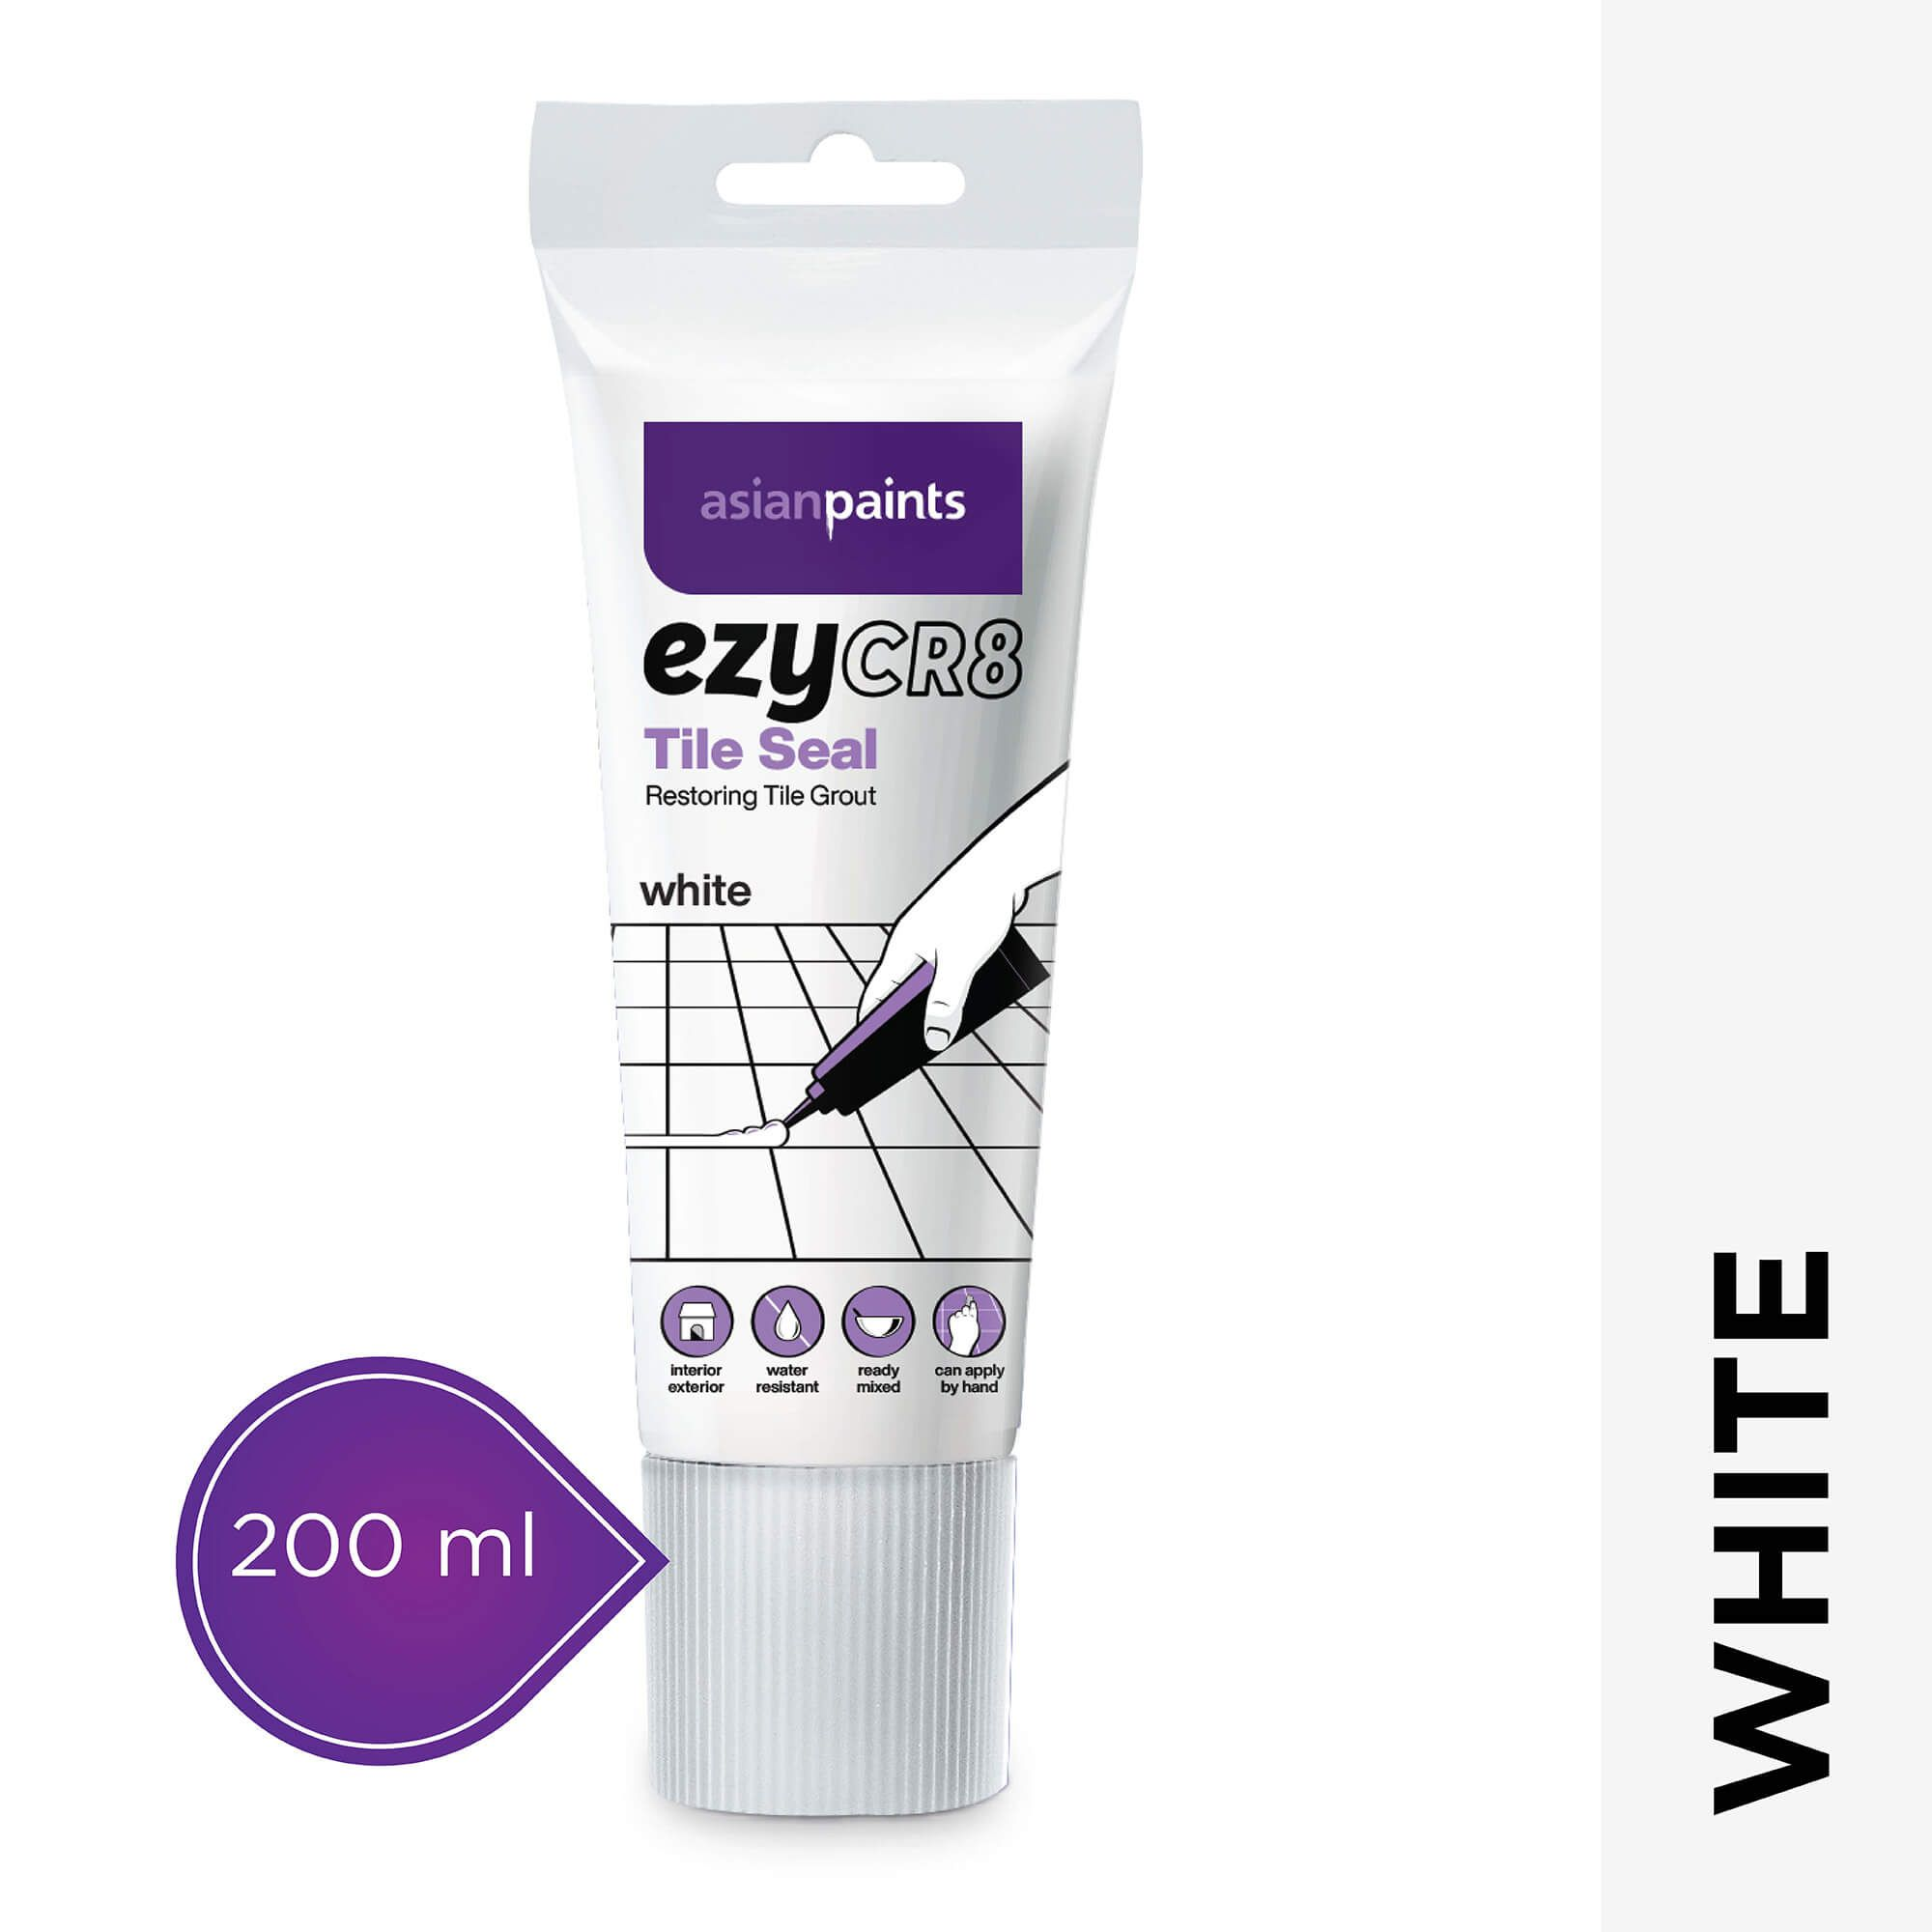 ezyCR8 Tile Seal - White - 200ml